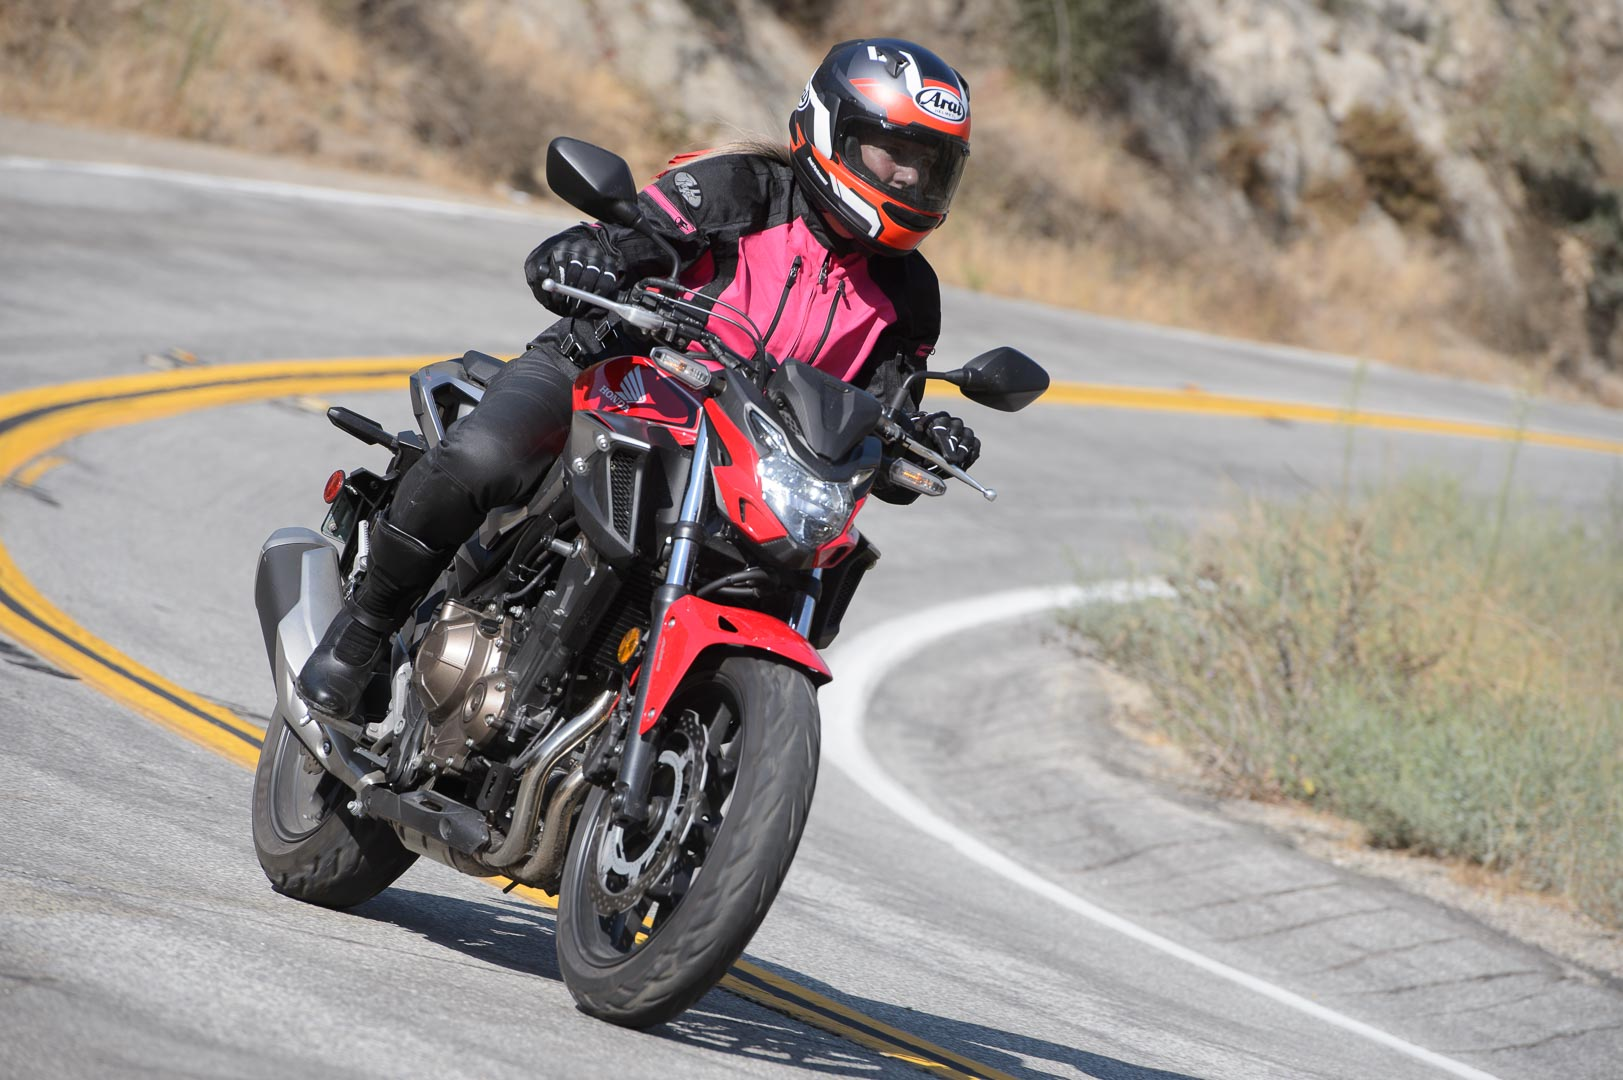 2019 Honda CB500F Review: Price